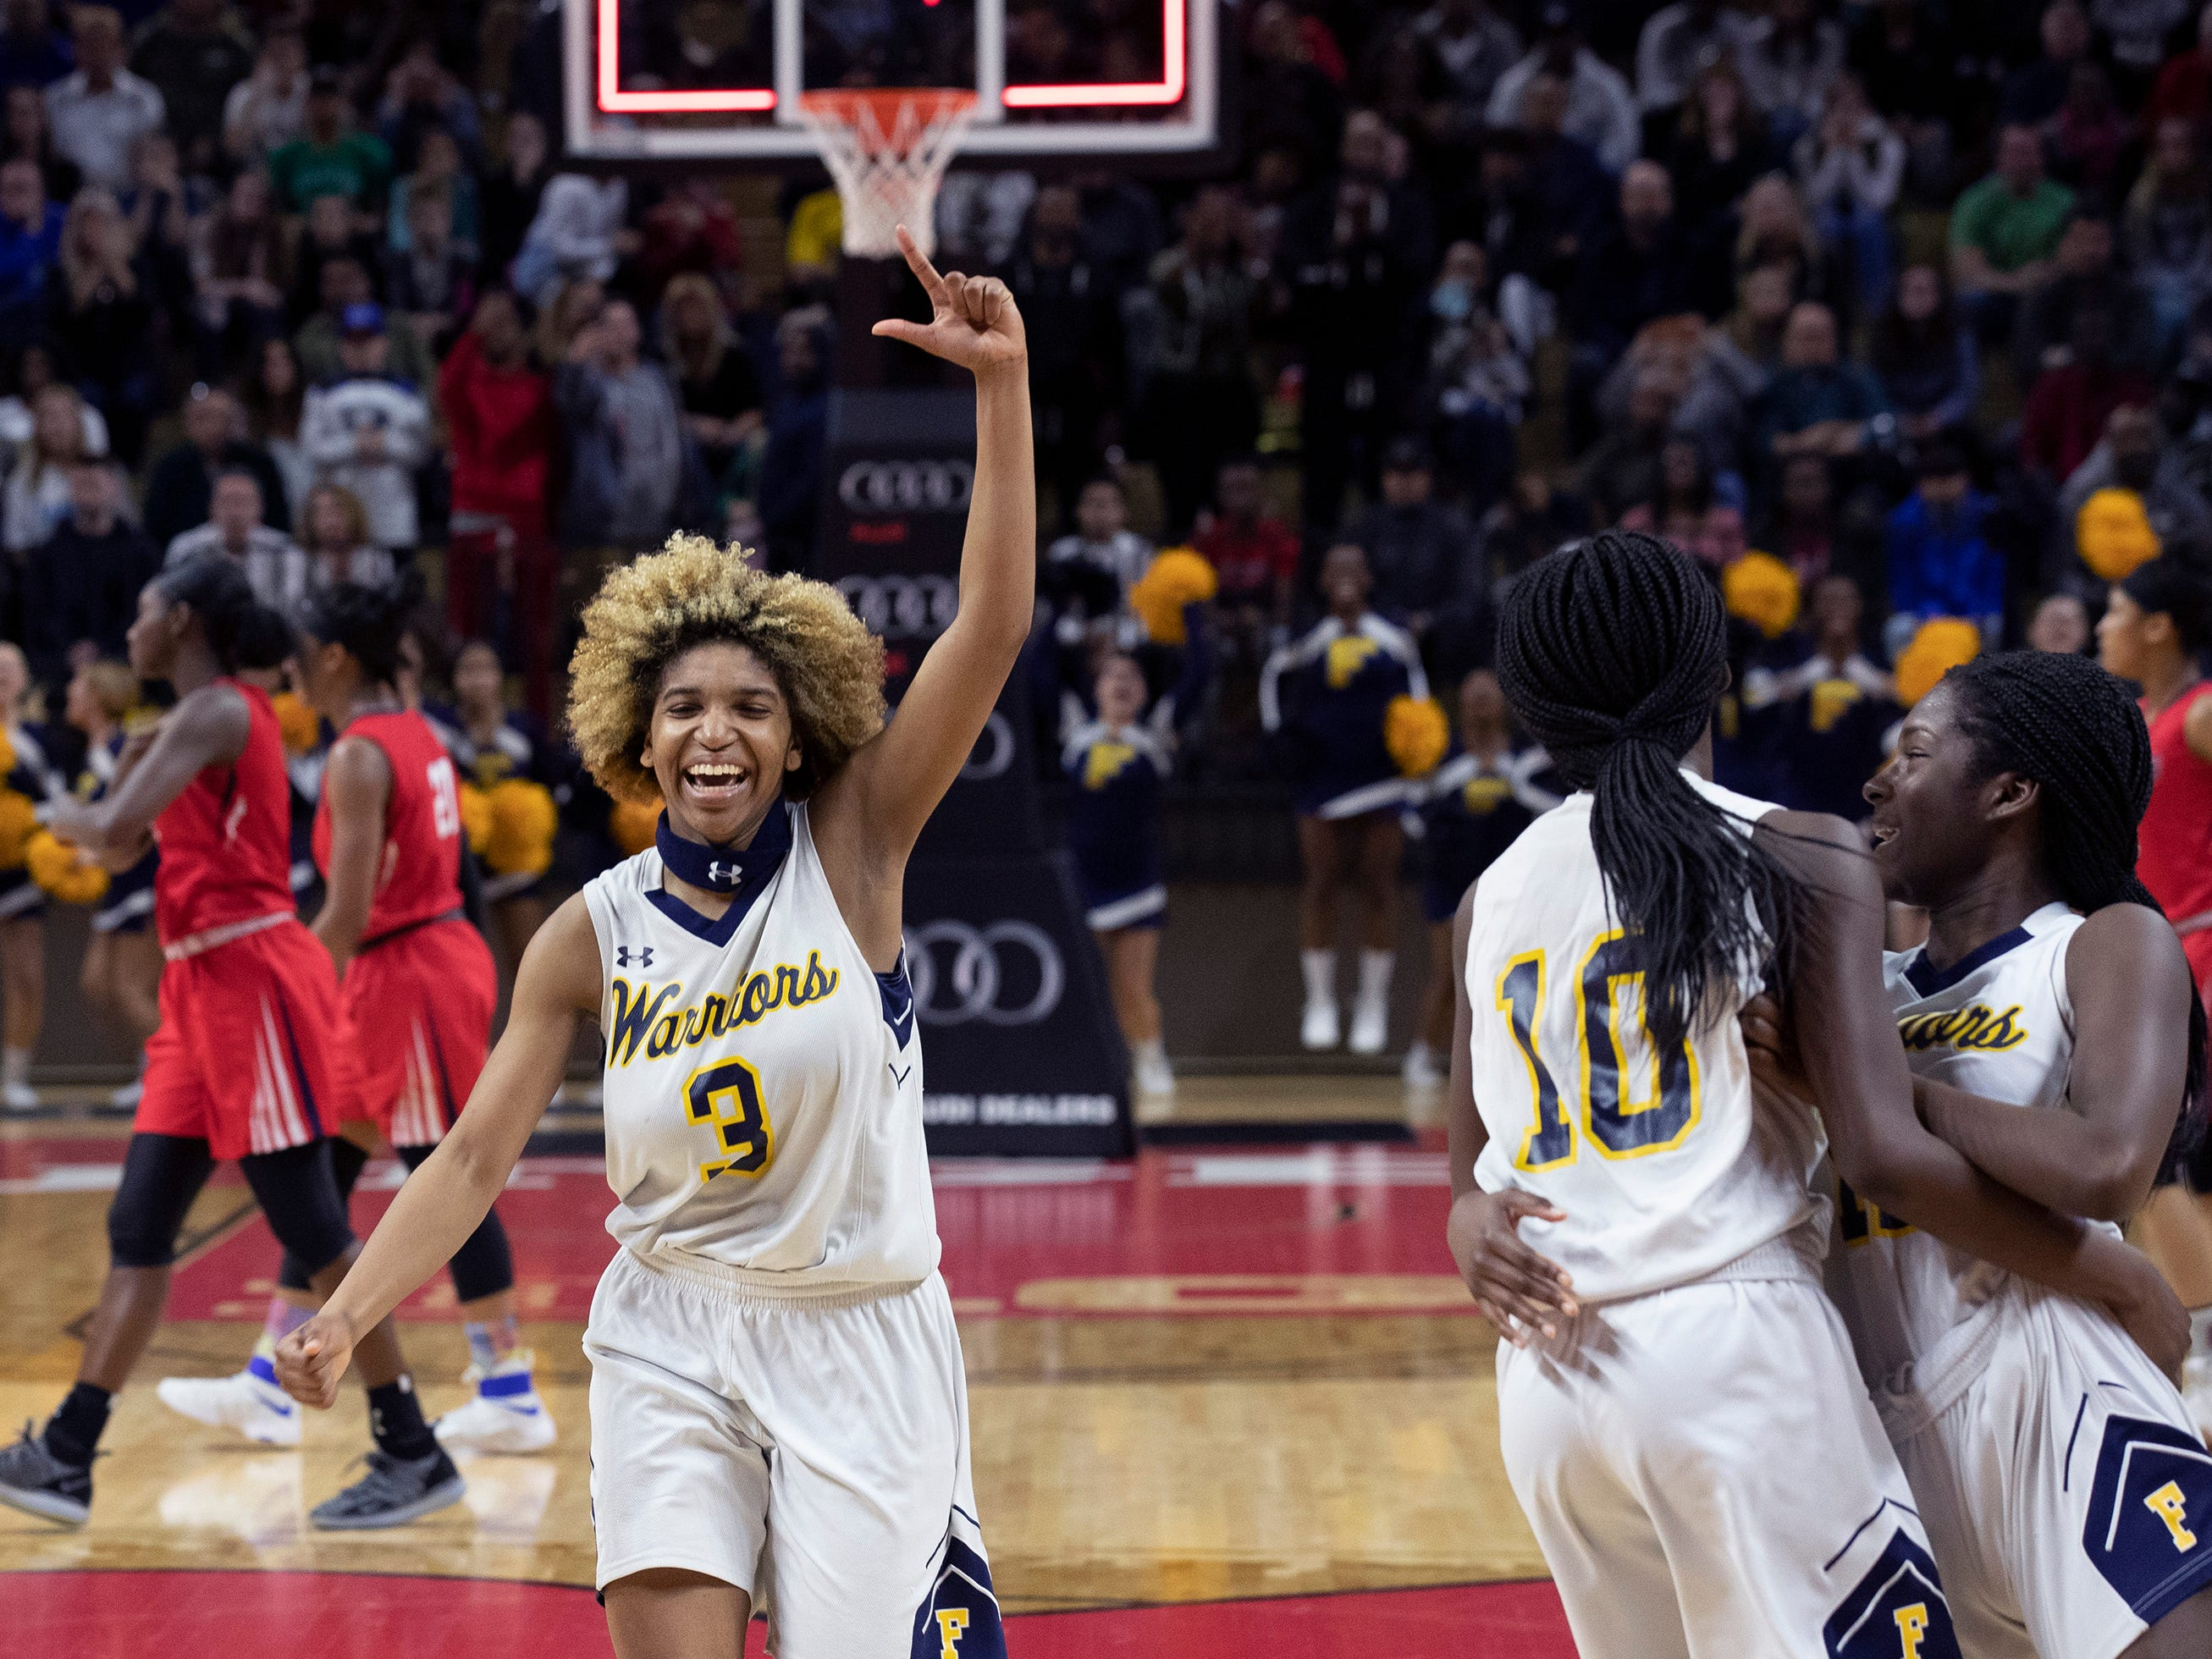 Tiana Jackson celebrates their win as the clock runs down. Franklin Girls Basketball vs Saddle River Day School  in 2019 NJSIAA Tournament of Champions Final in Piscataway, NJ  on March 17, 2019.